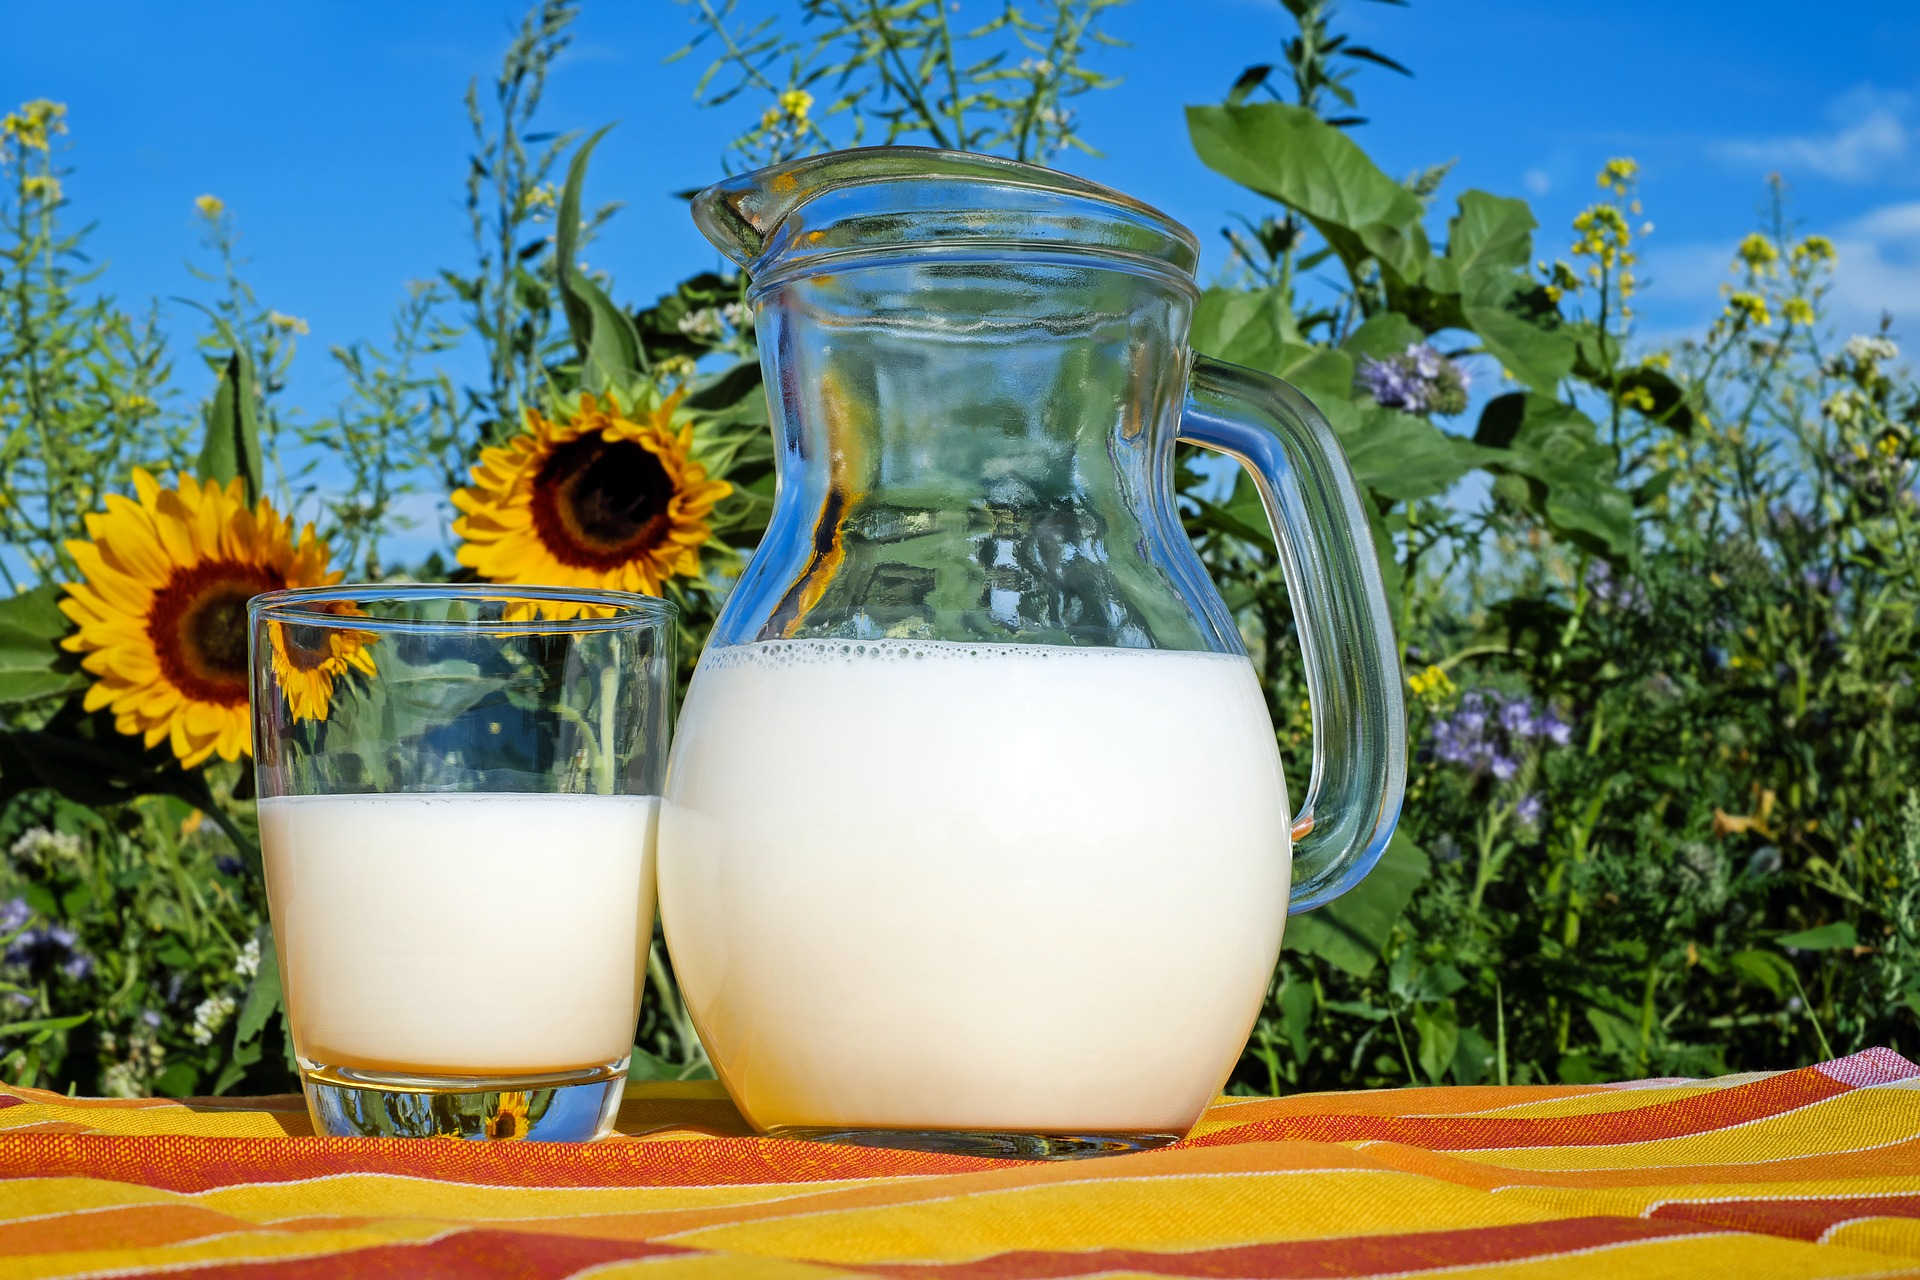 a jar and cup of milk in a sunflower field